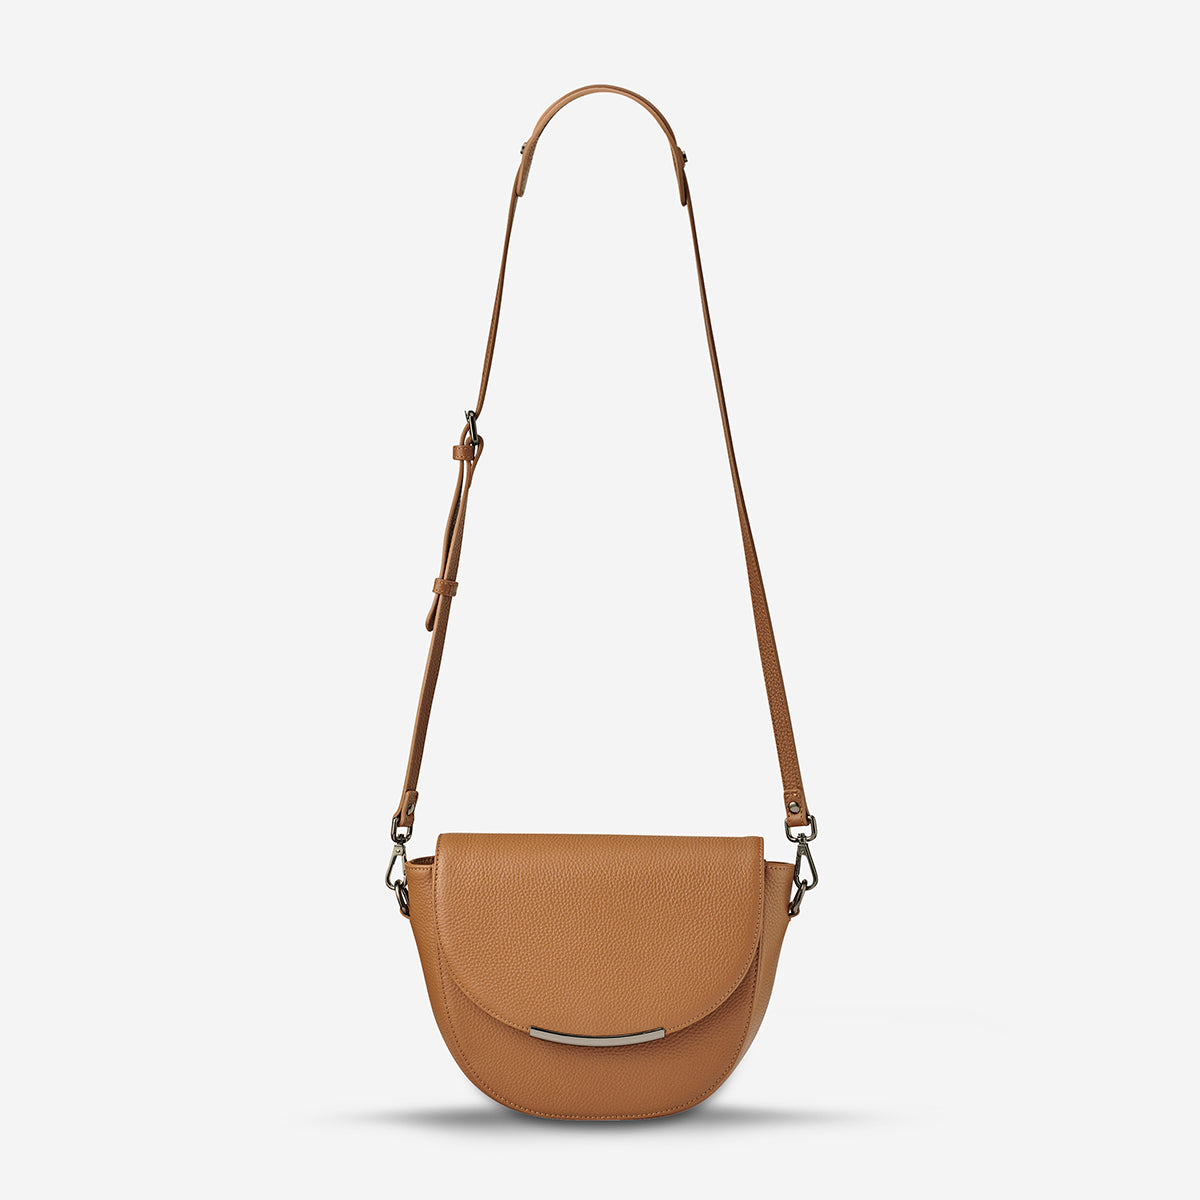 Status Anxiety The Oracle Women's Leather Crossbody Bag - Tan